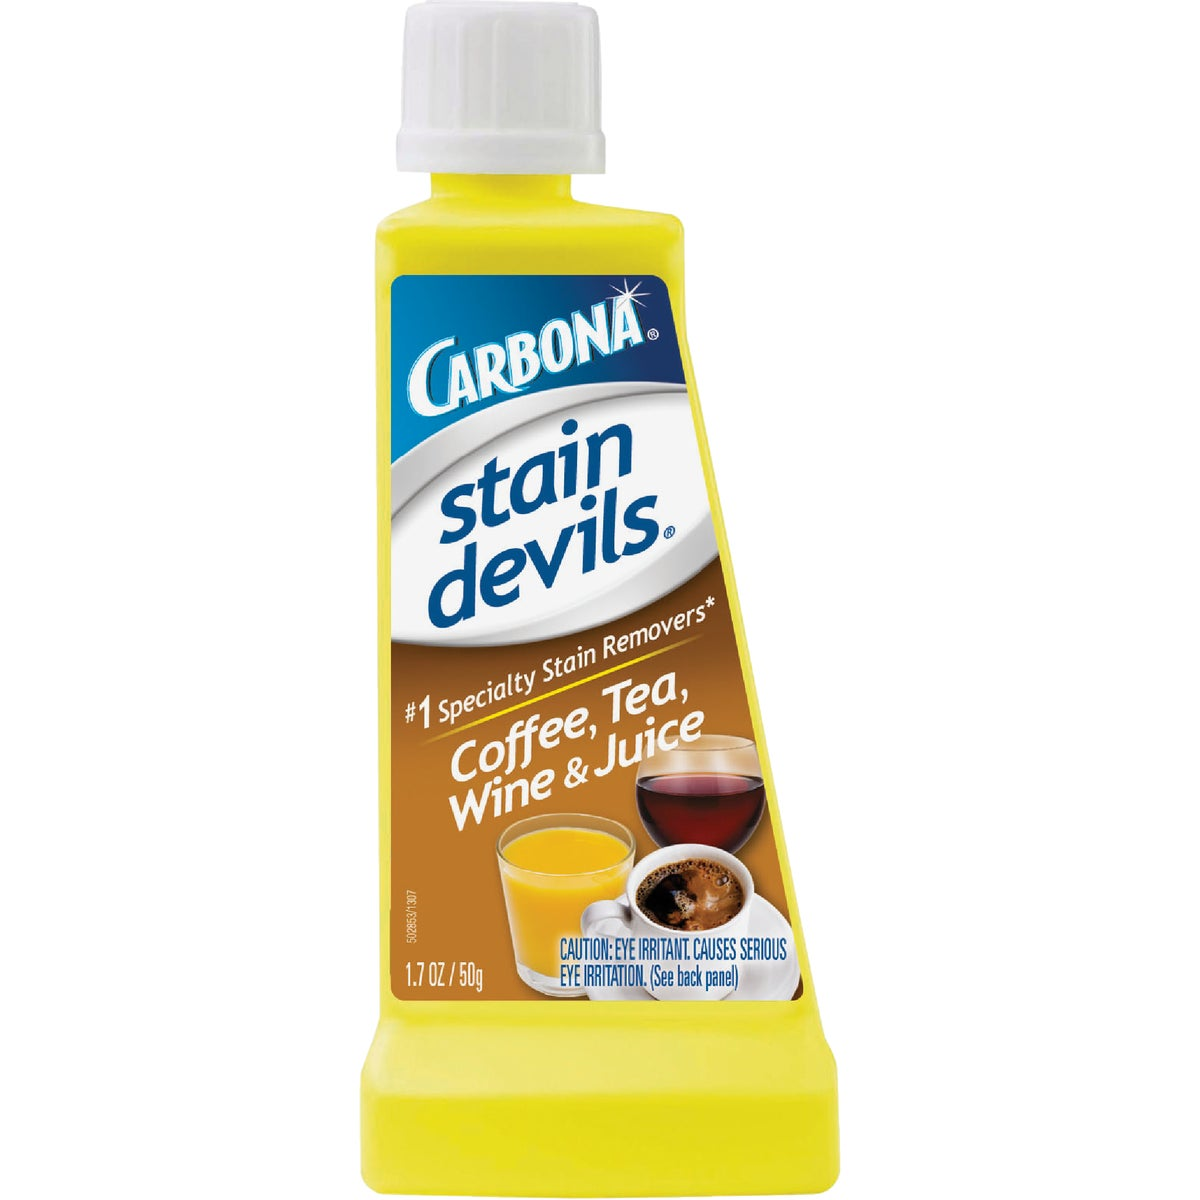 Carbona Stain Devils Formula 8 Stain Remover, 407/24